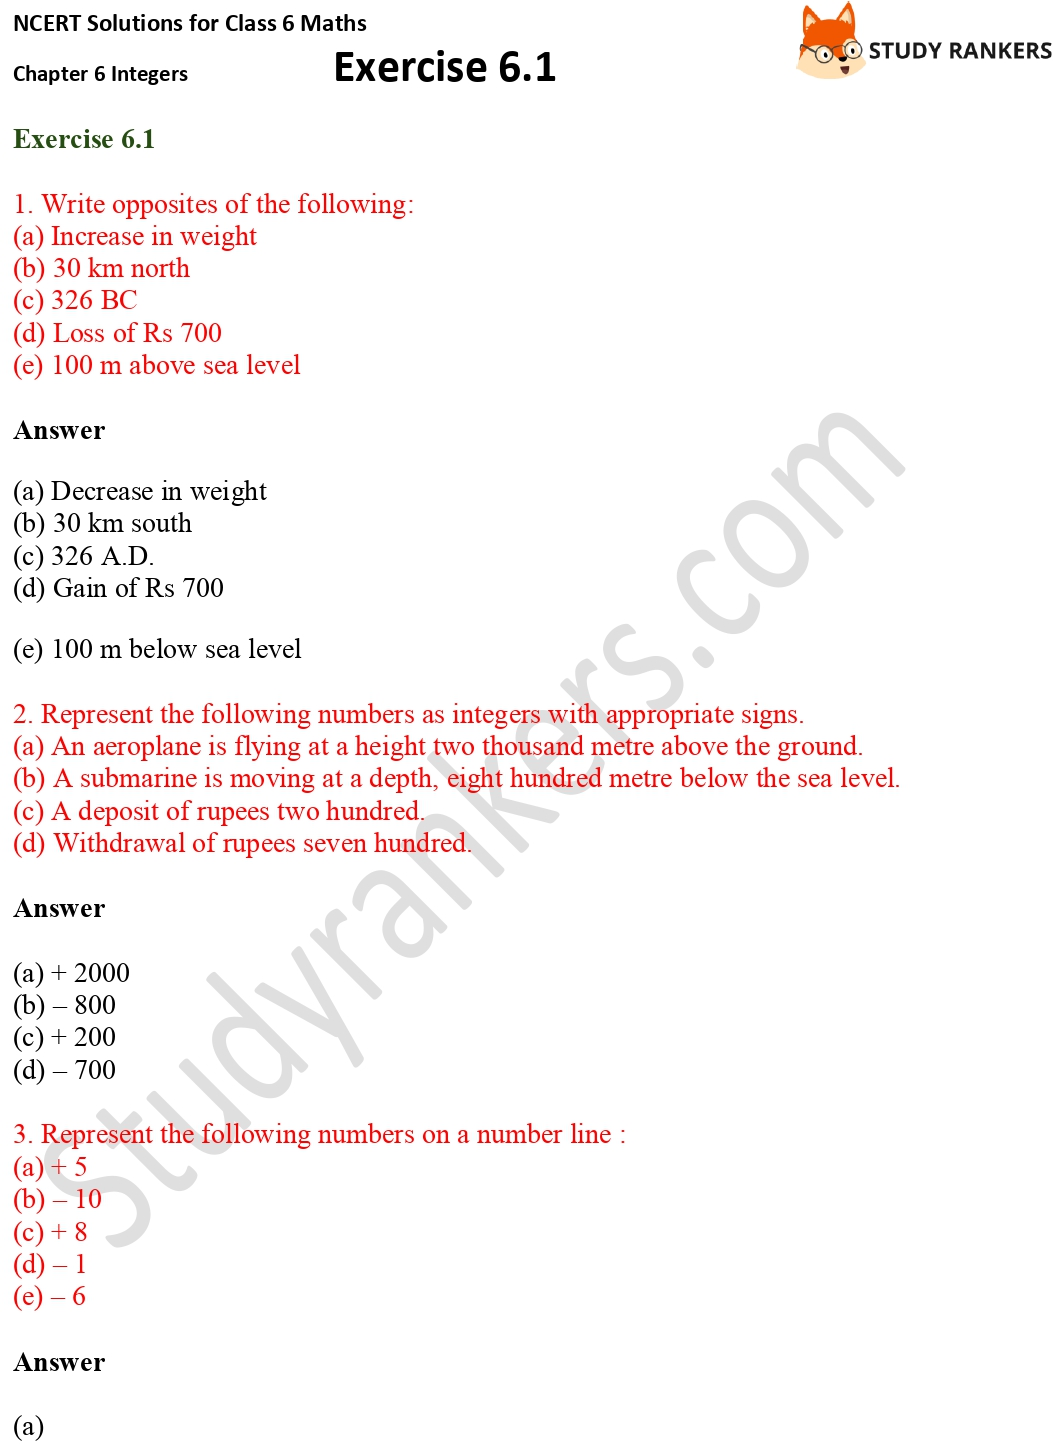 NCERT Solutions for Class 6 Maths Chapter 6 Integers Exercise 6.1 Part 1